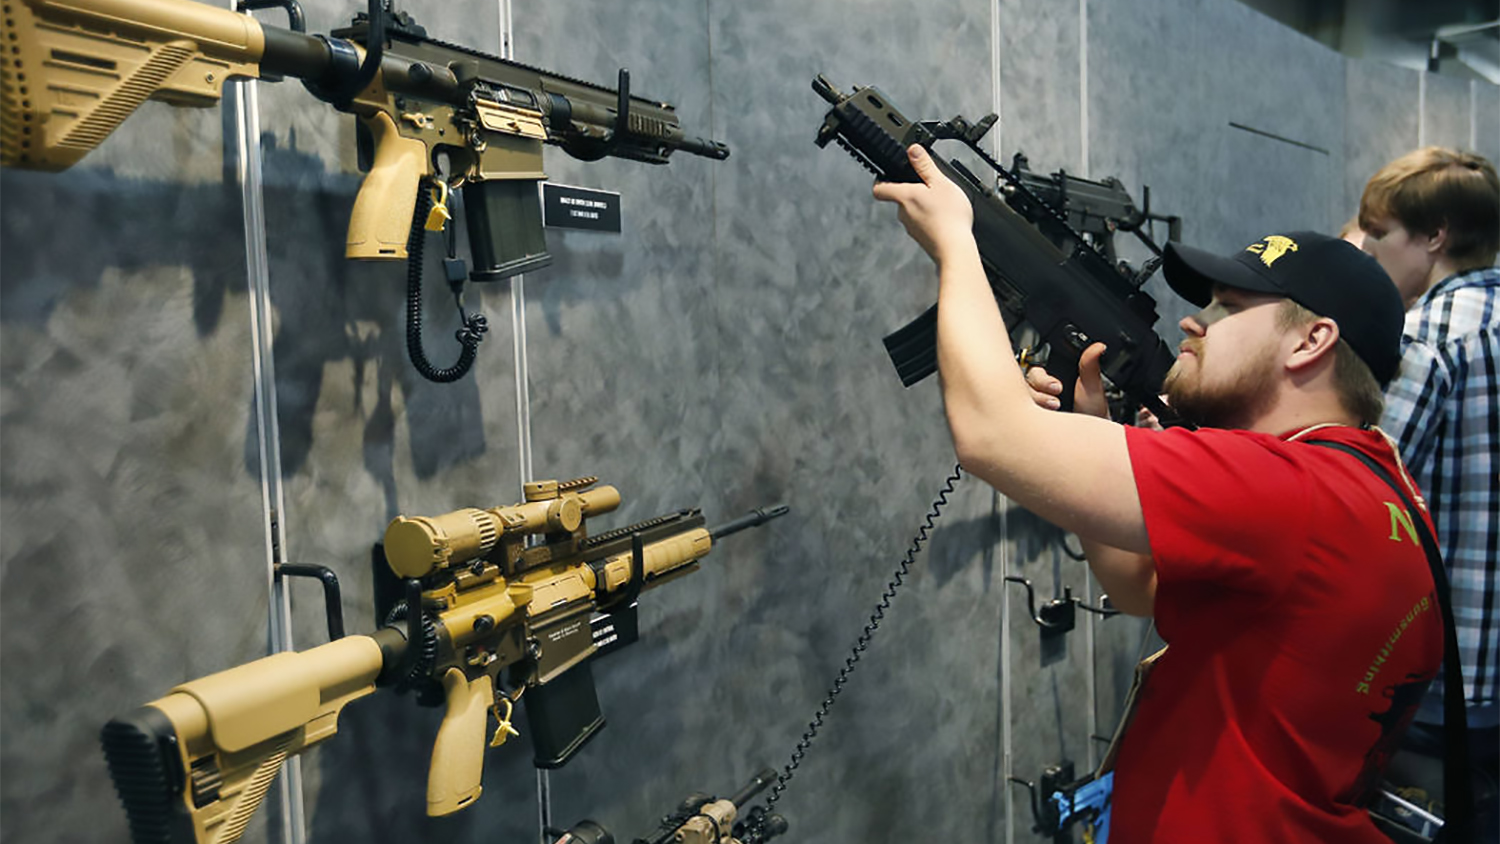 Las Vegas Review-Journal: Communities need more programs that teach firearm safety